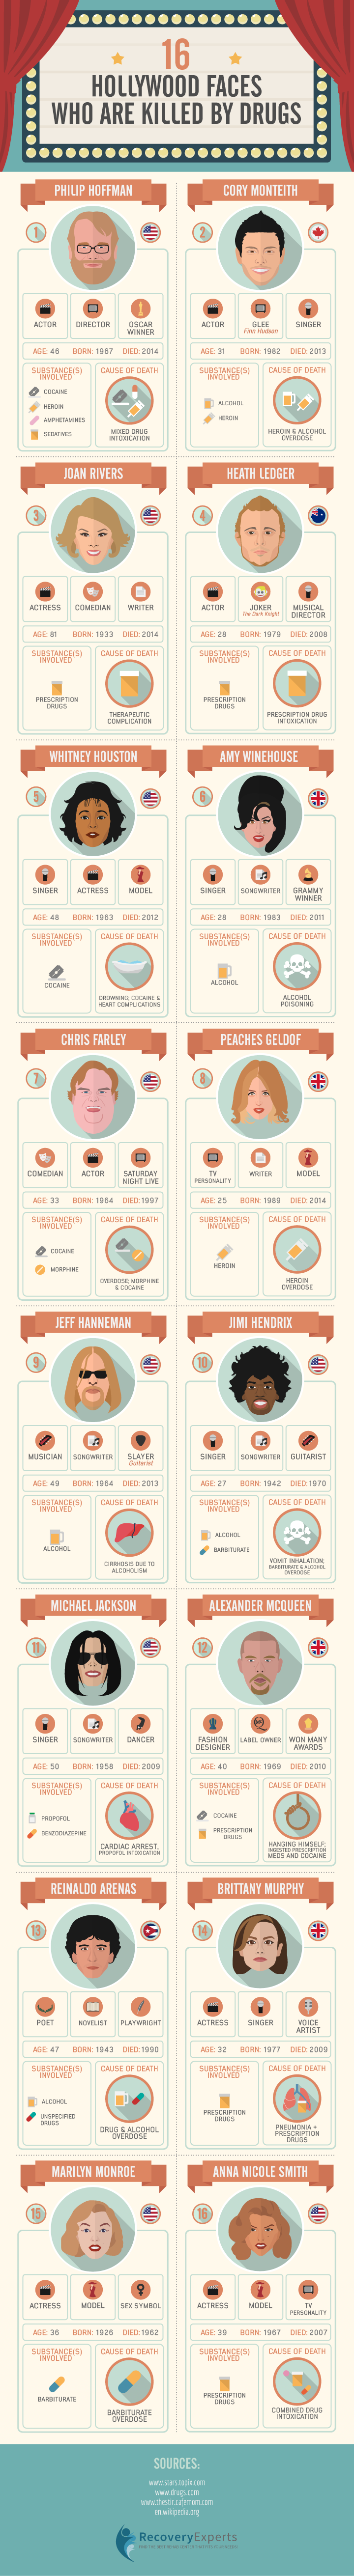 16 Hollywood Faces Killed by Drugs